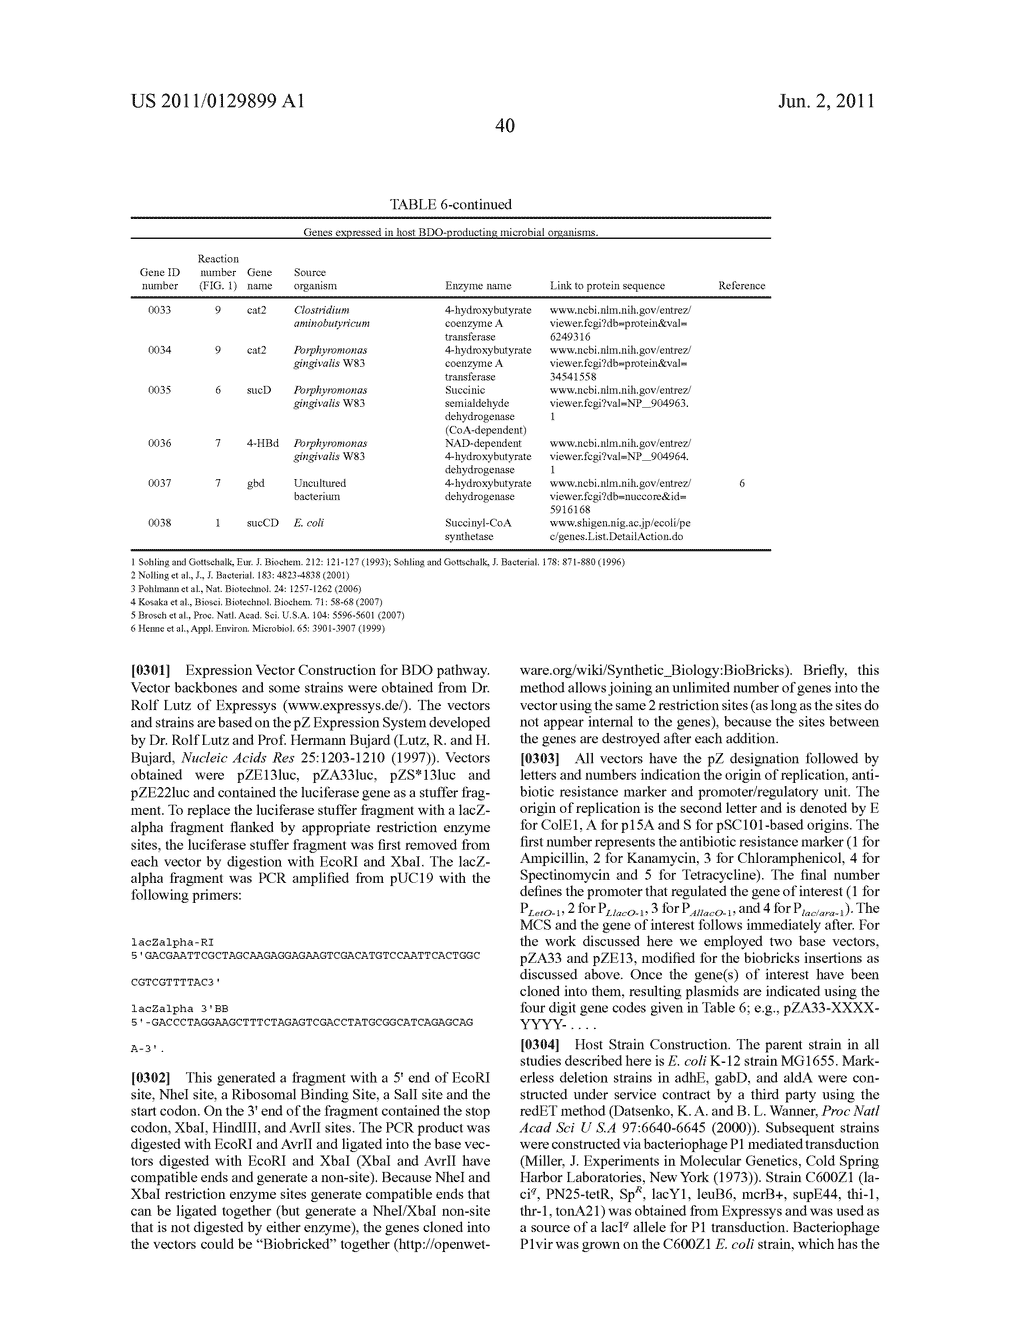 MICROORGANISMS FOR THE PRODUCTION OF 1,4-BUTANEDIOL, 4-HYDROXYBUTANAL,     4-HYDROXYBUTYRYL-COA, PUTRESCINE AND RELATED COMPOUNDS, AND METHODS     RELATED THERETO - diagram, schematic, and image 109